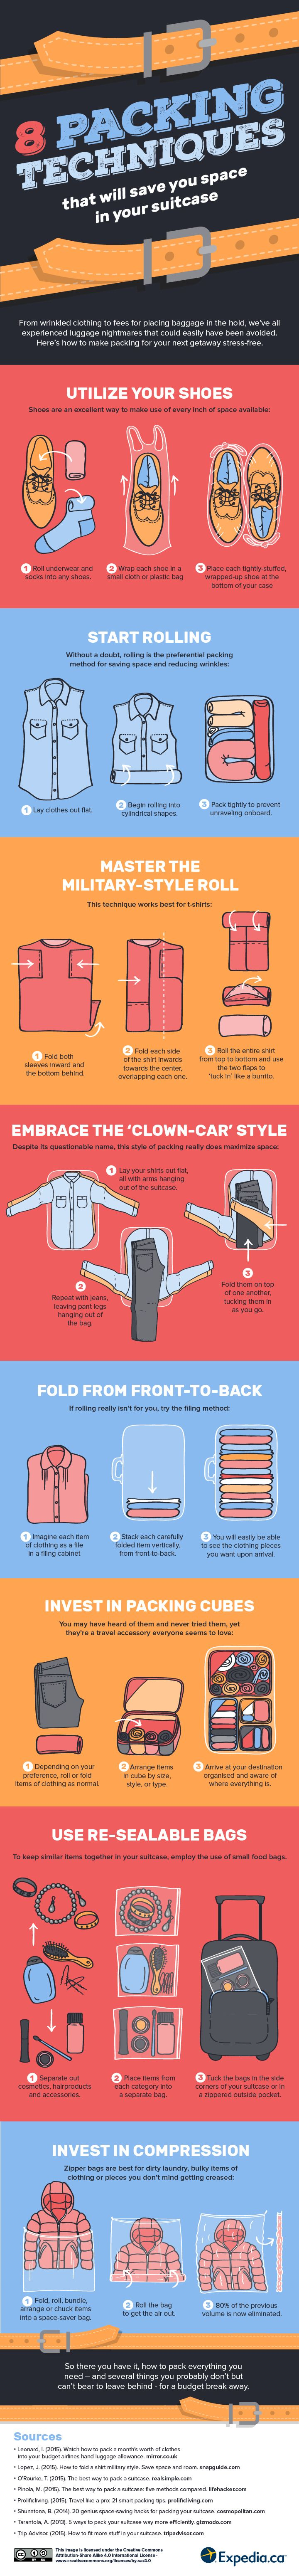 Best way to fold clothes for suitcase - 8 Packing Techniques That Will Save You Space In Your Suitcase Infographic